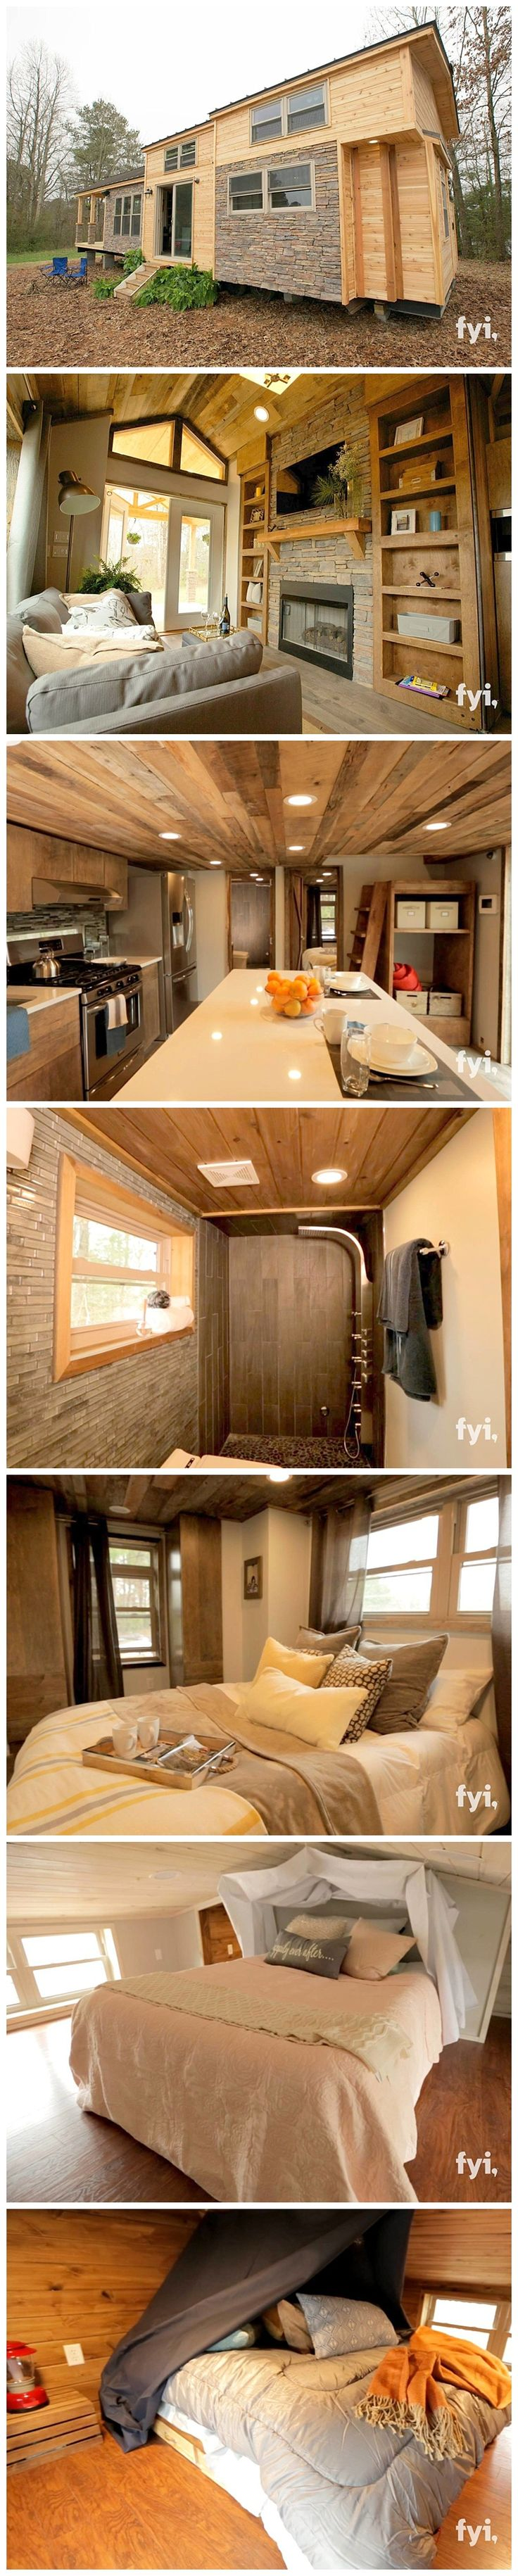 Luxurious 400 sq feet tiny house. My dream family vacation home